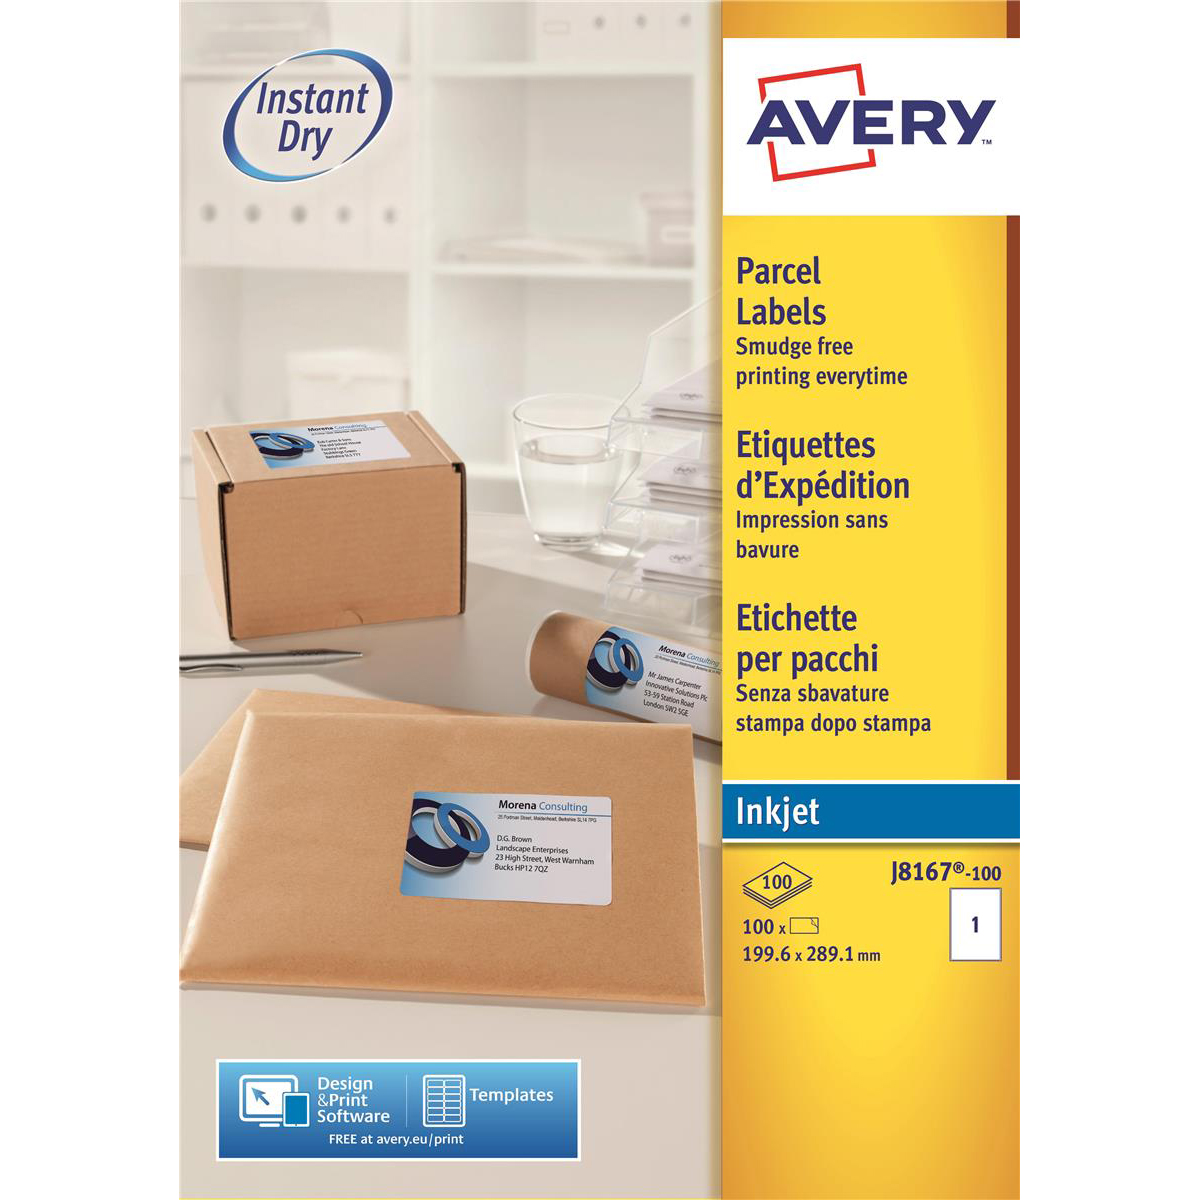 Avery Quick DRY Parcel Labels Inkjet 1 per Sheet 199.6x289.1mm White Ref J8167-100 100 Labels